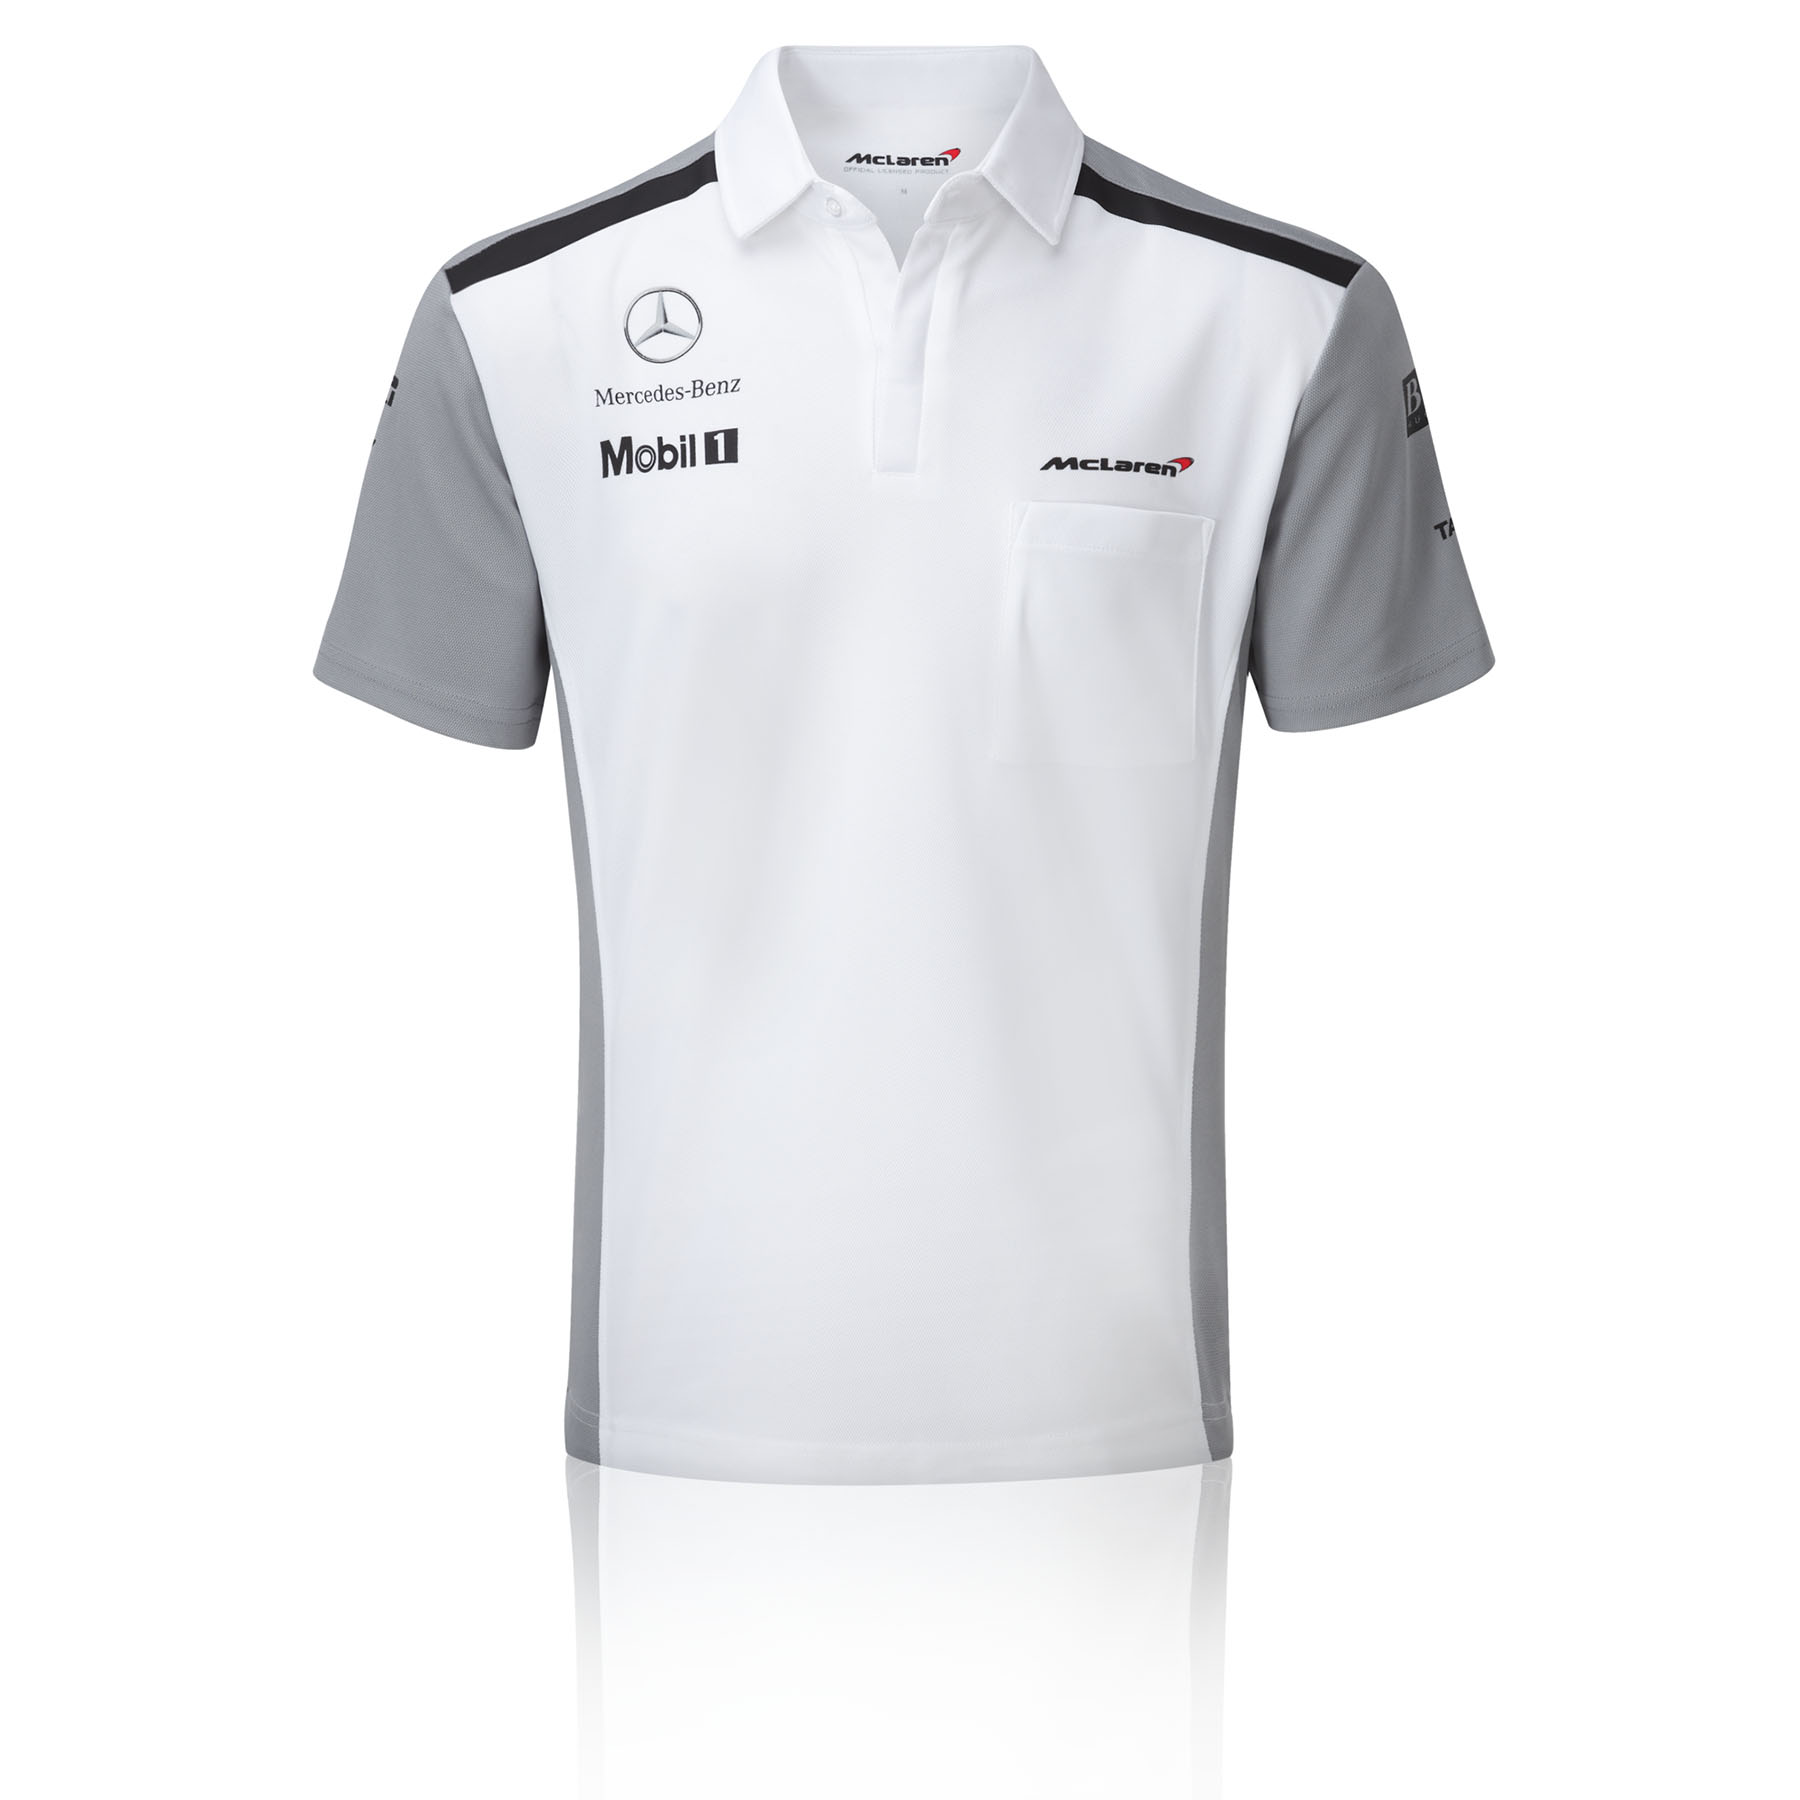 McLaren Mercedes 2014 Team Polo